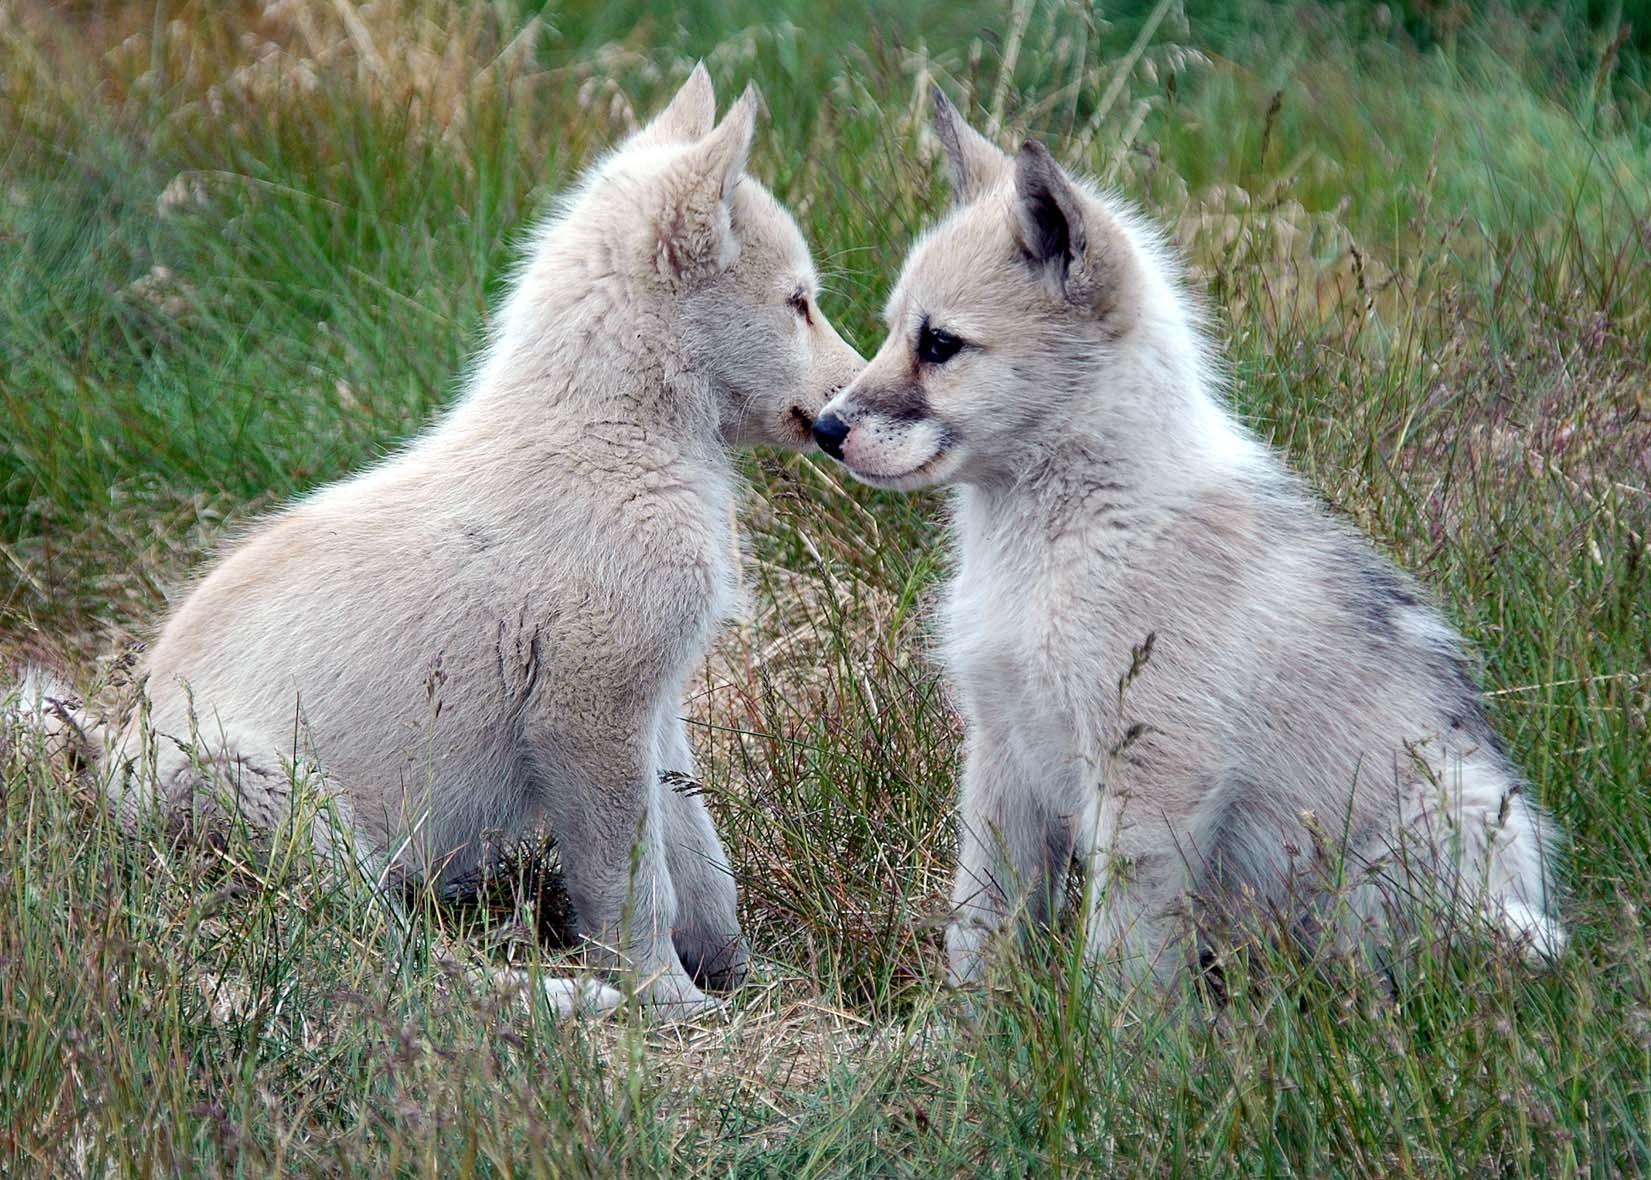 Two sweet Greenland dog puppies wallpaper